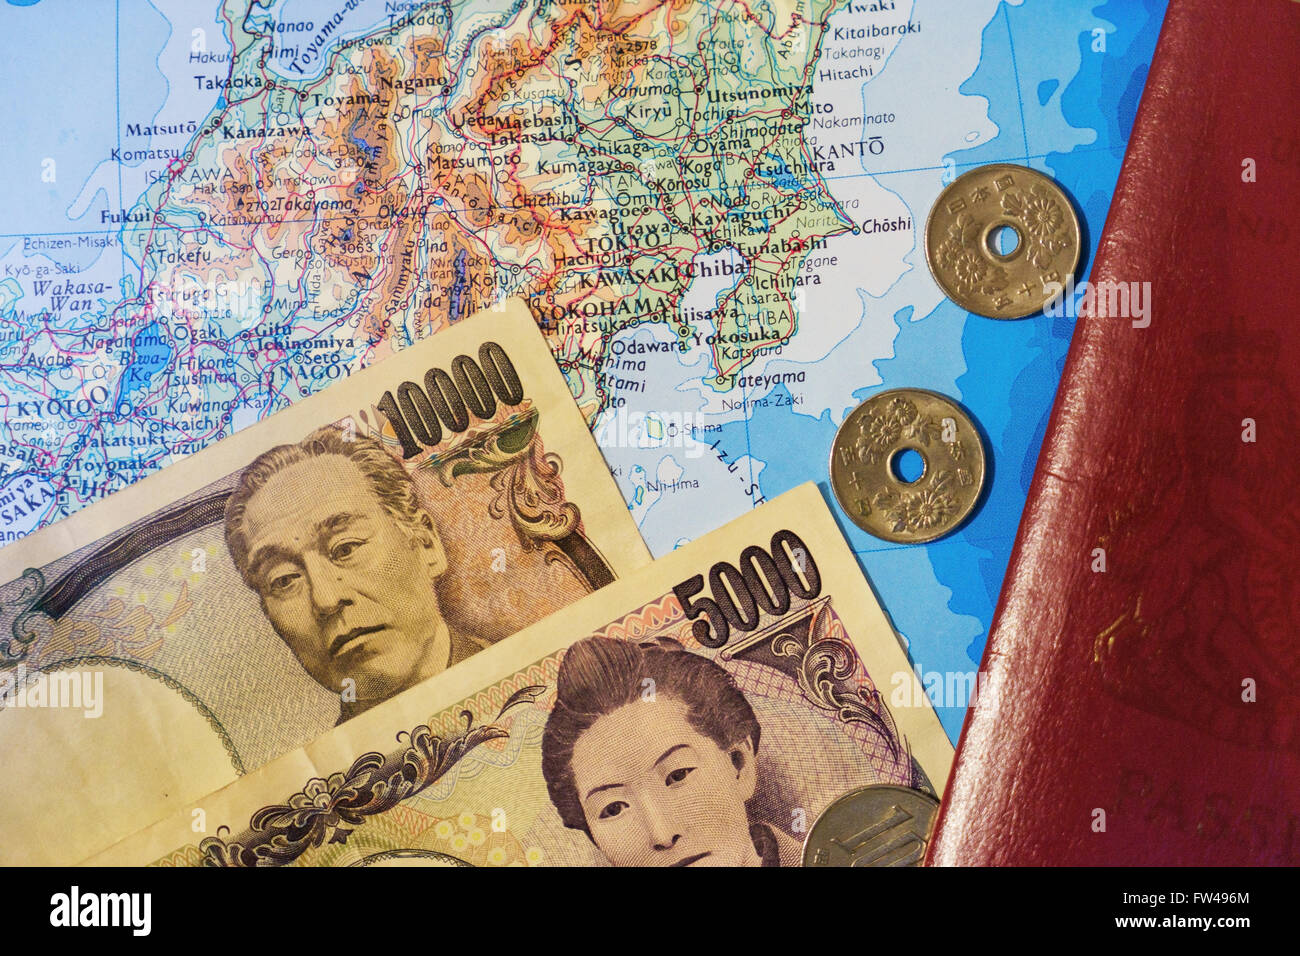 Japanese map, money and passport for travelling. - Stock Image